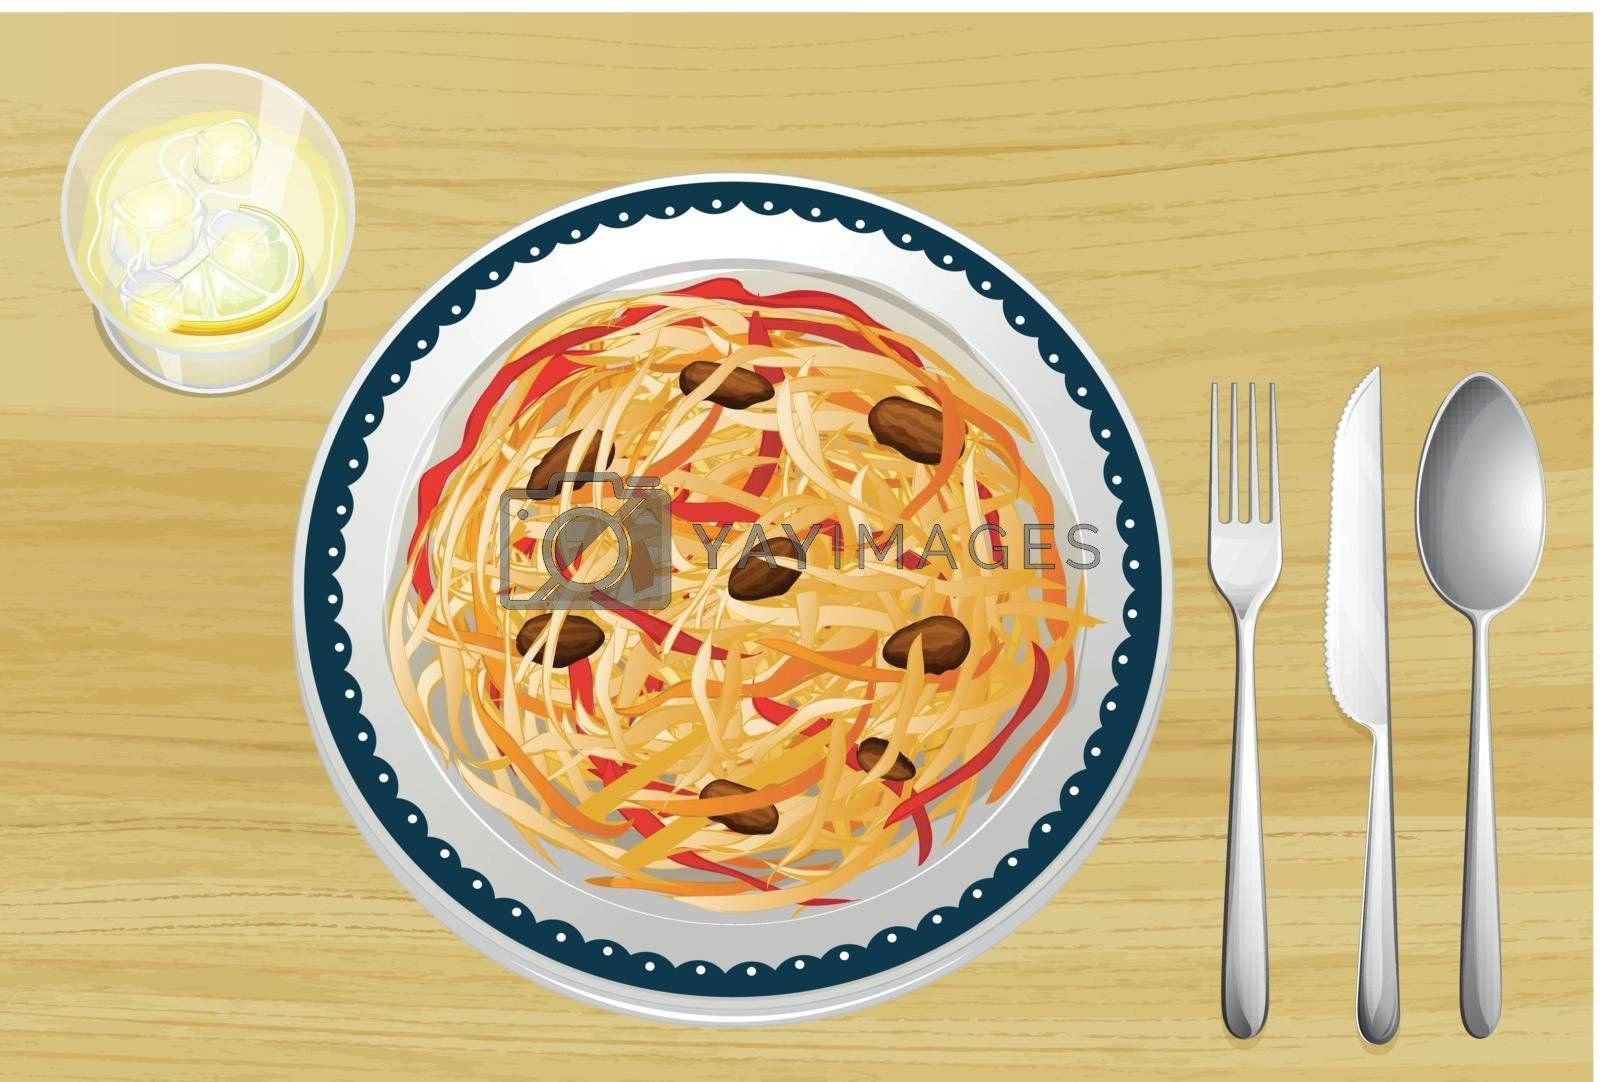 Illustration of Asian food on a wooden table